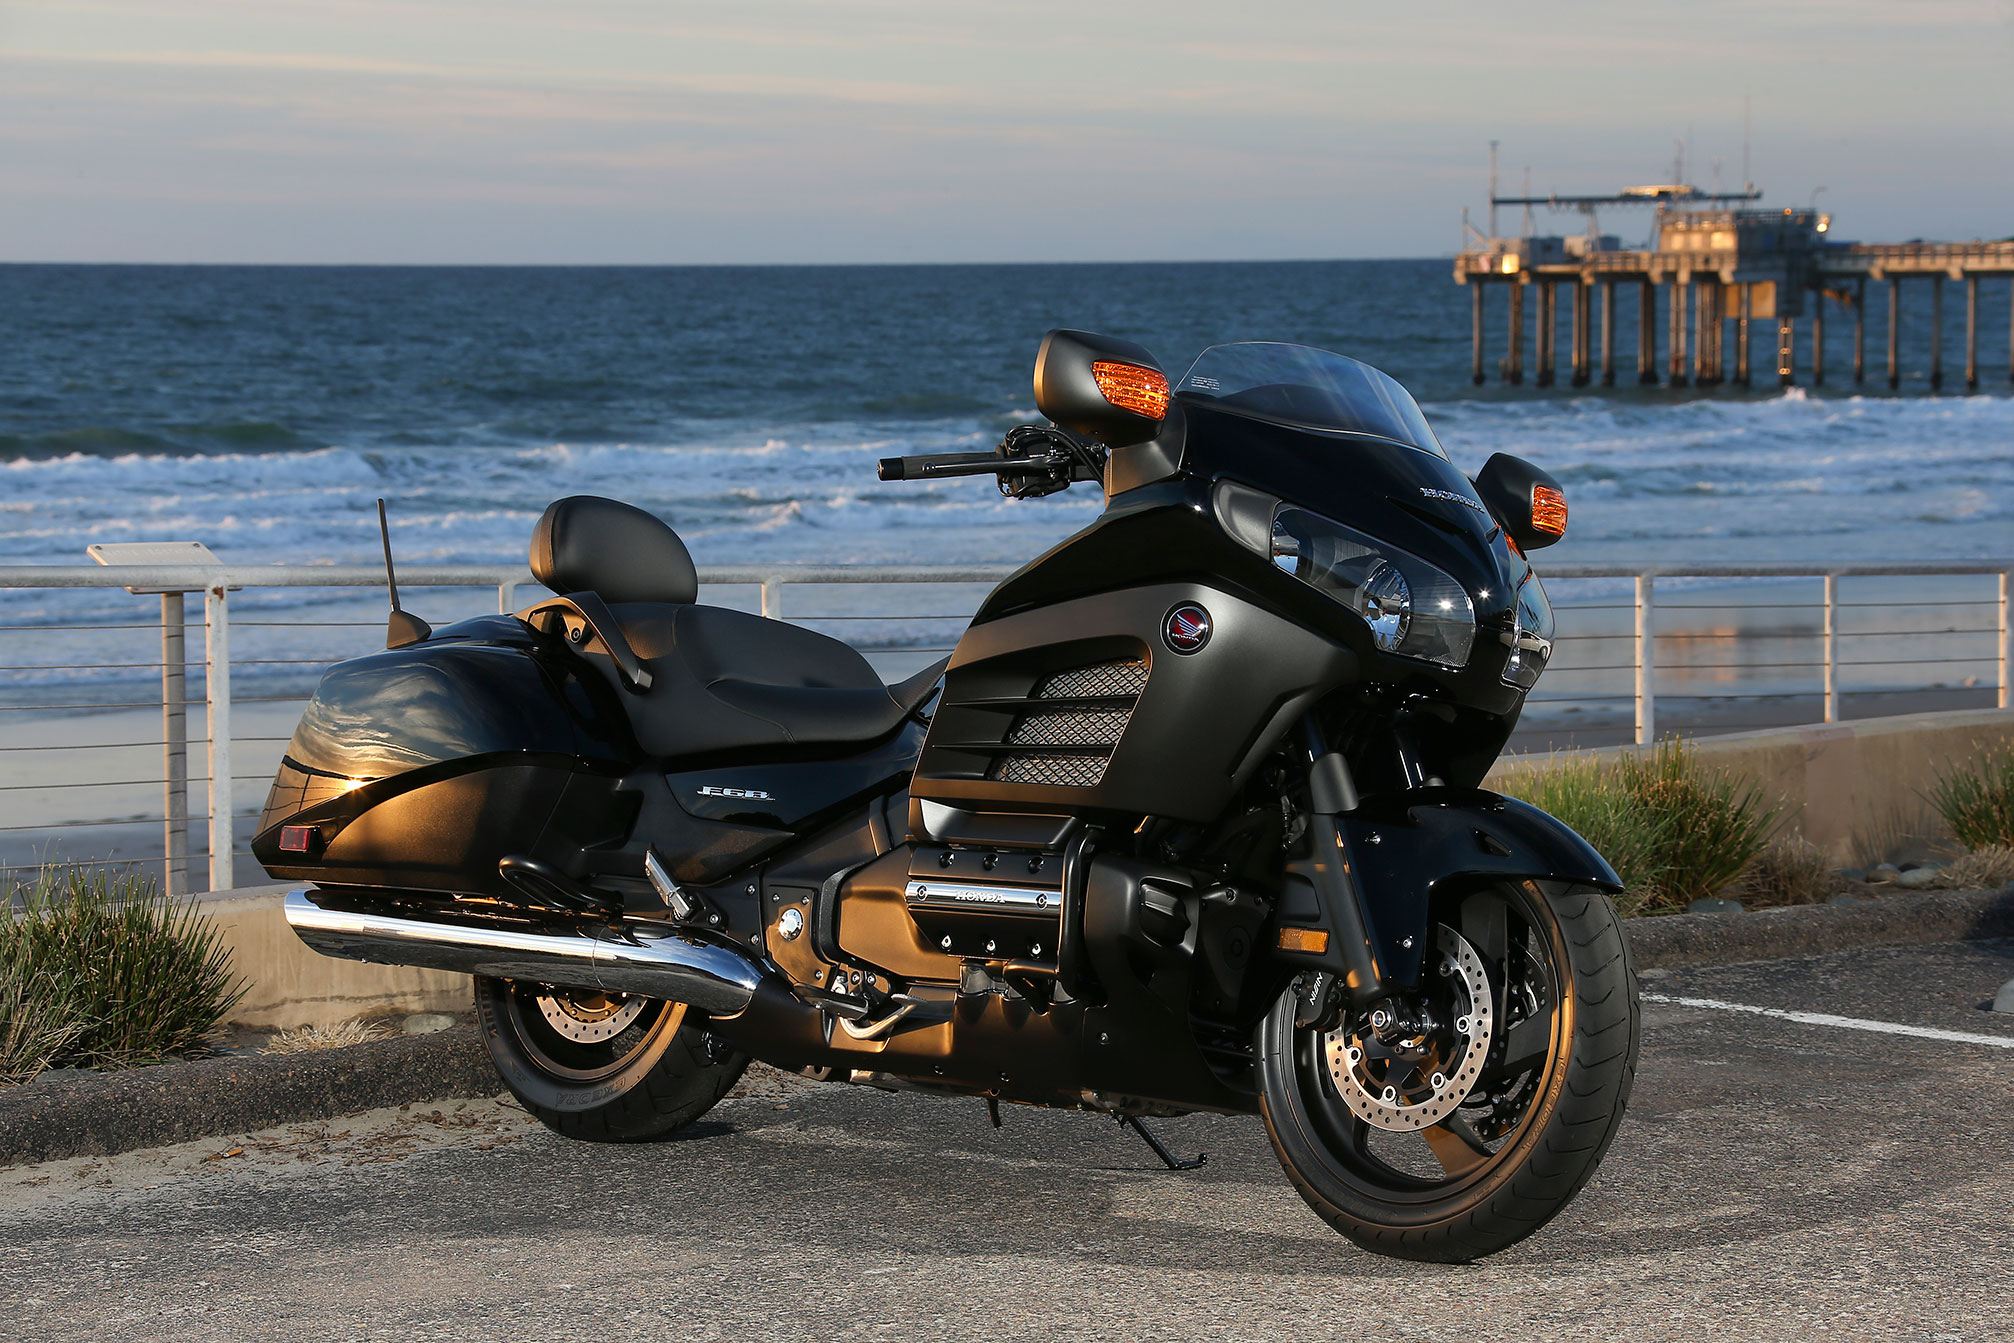 2013 Honda Goldwing F6b Specifications ~ Nothing found for 2013 Honda